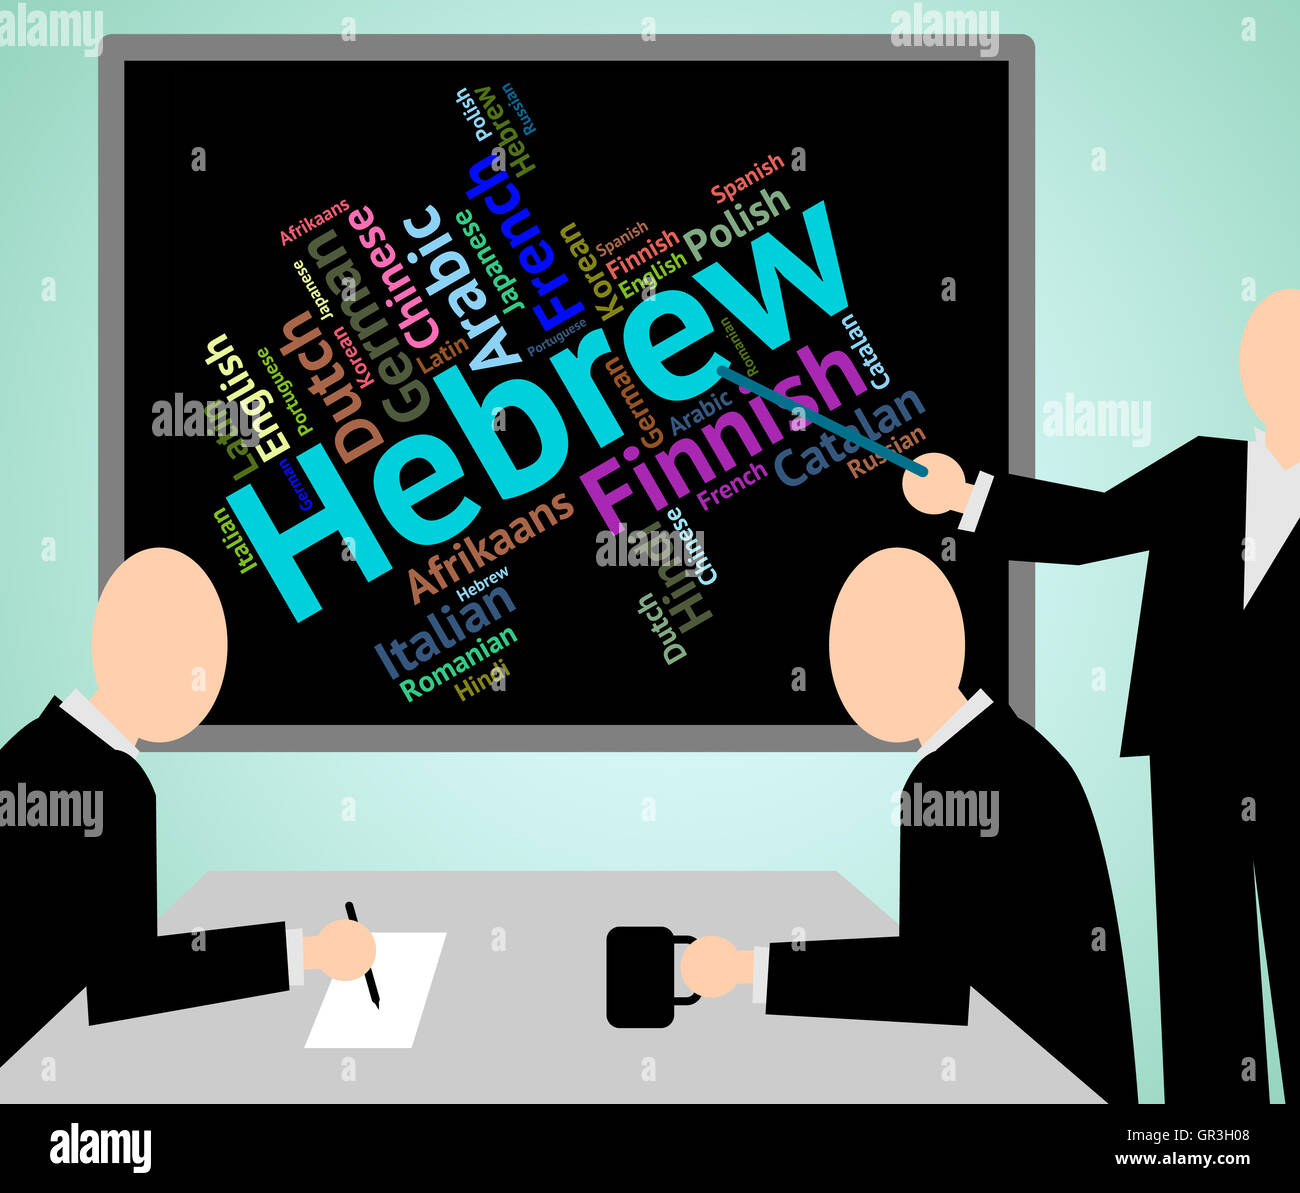 Hebrew Language Showing Israel Foreign And Translate - Stock Image